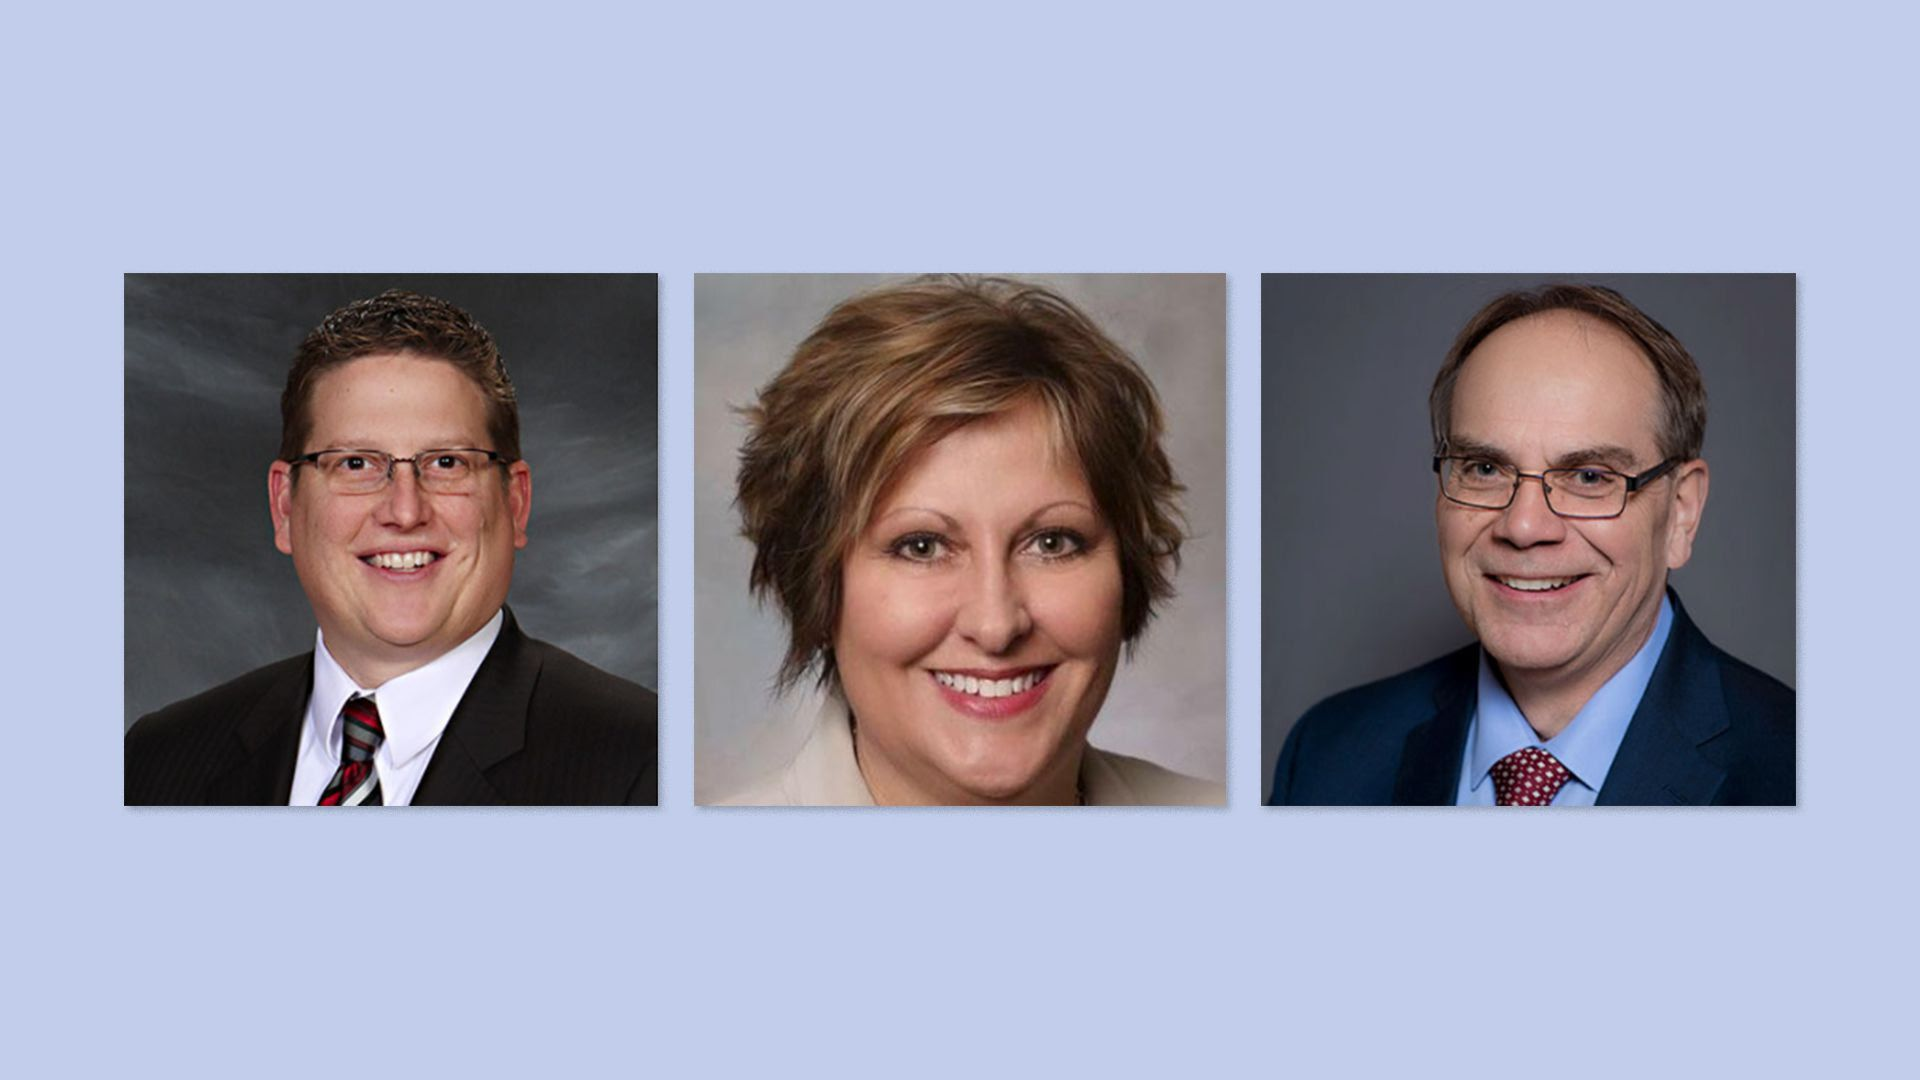 Three headshots of Des Moines city manager Scott Sanders, city clerk Kay Cmelik and city attorney Jeff Lester.